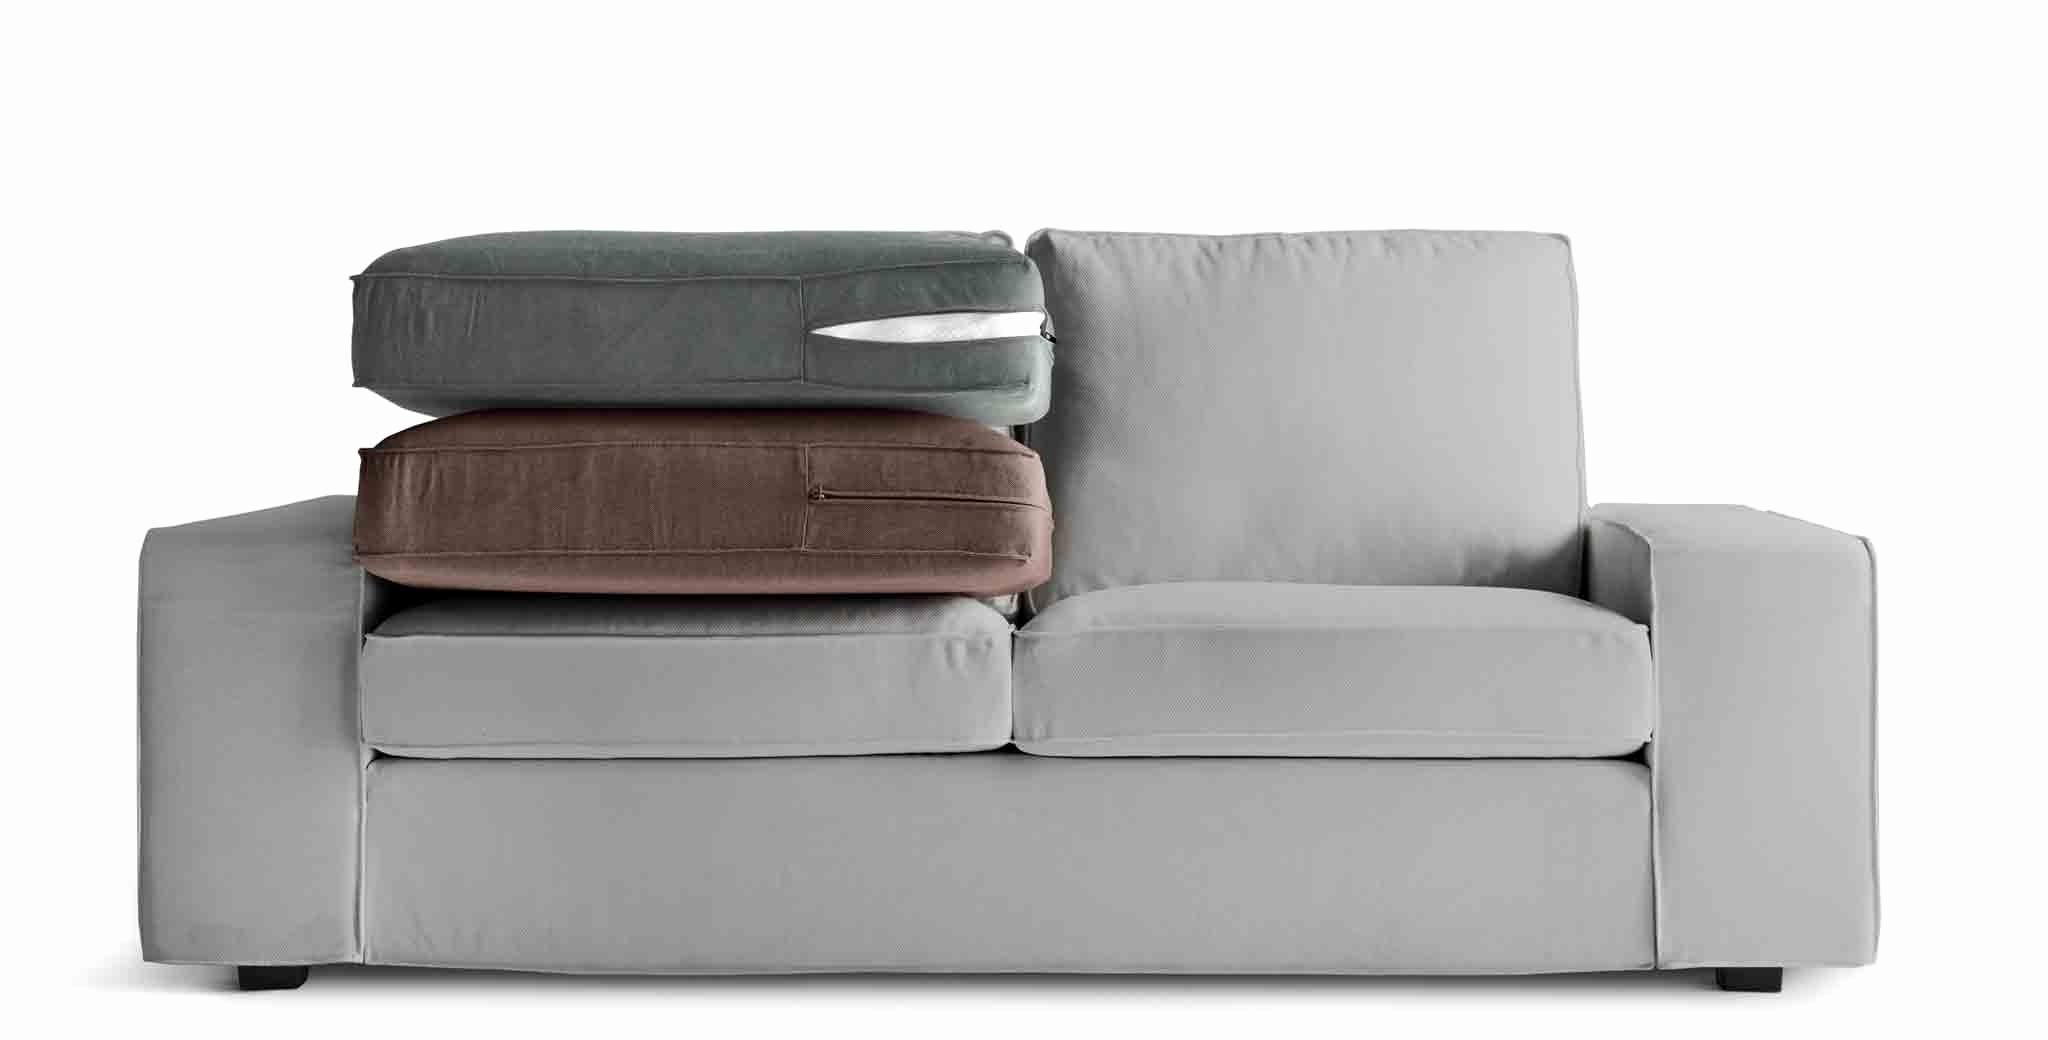 Sofas With Removable Covers With Regard To Recent Best Sofa Covers Ikea 2018 – Couches And Sofas Ideas (View 6 of 20)